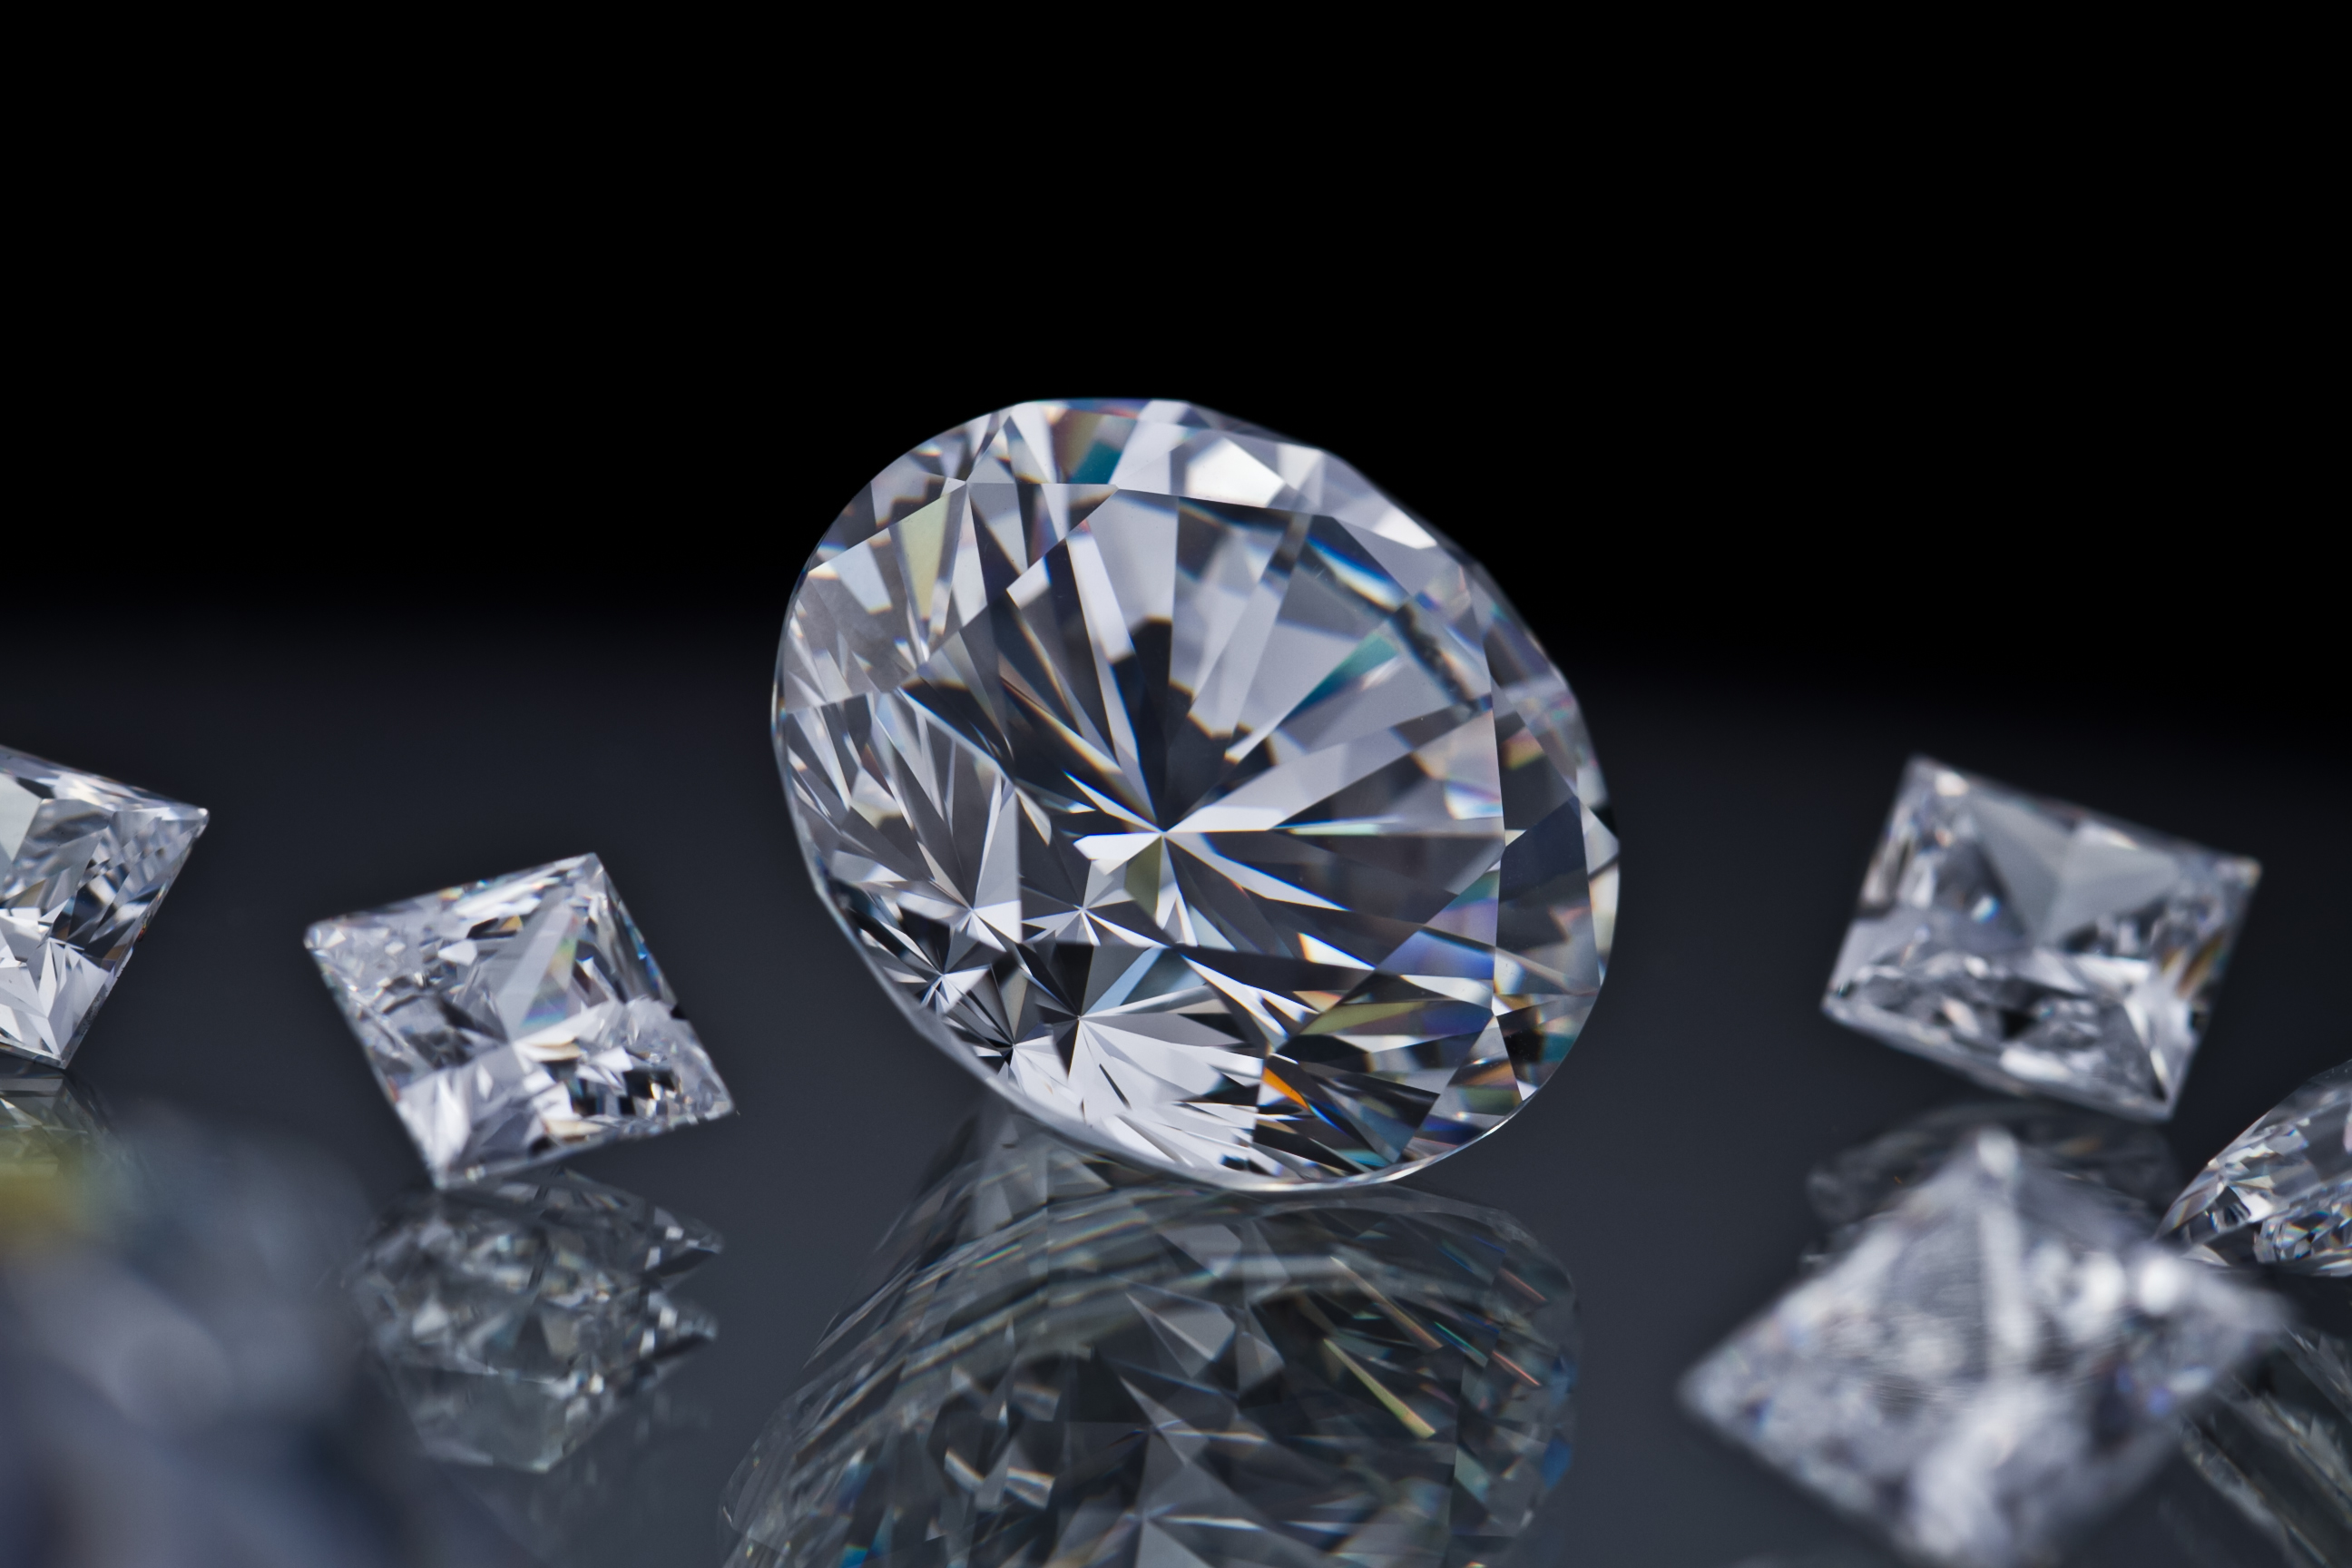 "De Beers' service will be open to polished diamonds more than 5 carats in weight or of fancy colour. Image courtesy: <a href=""https://www.flickr.com/photos/alonbj/24429270129/"" target=""_blank"">Flickr/Alon Ben Joseph</a>"